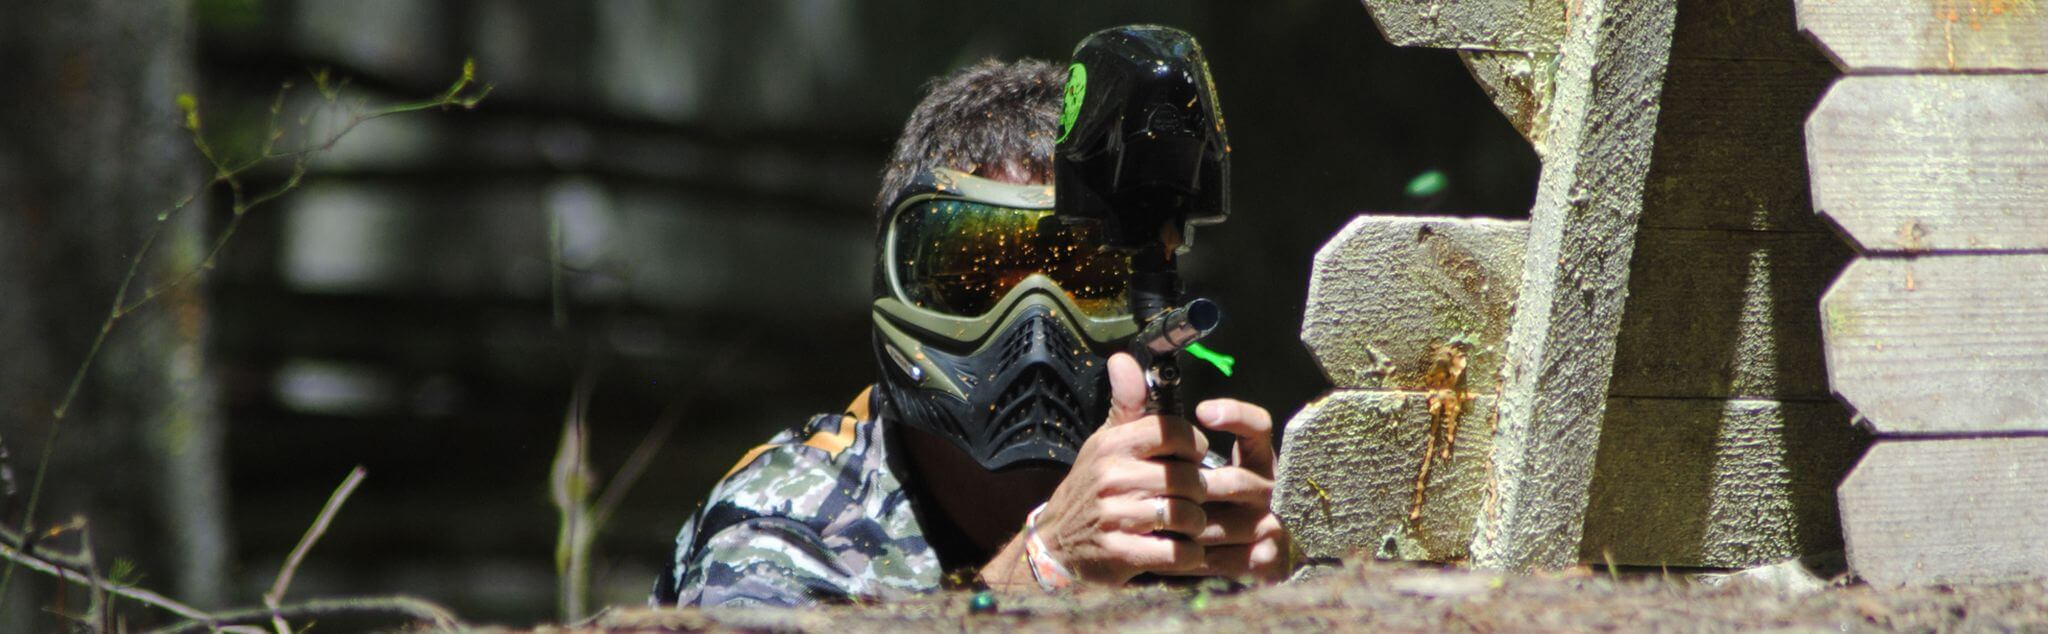 Paintball in Islas Baleares